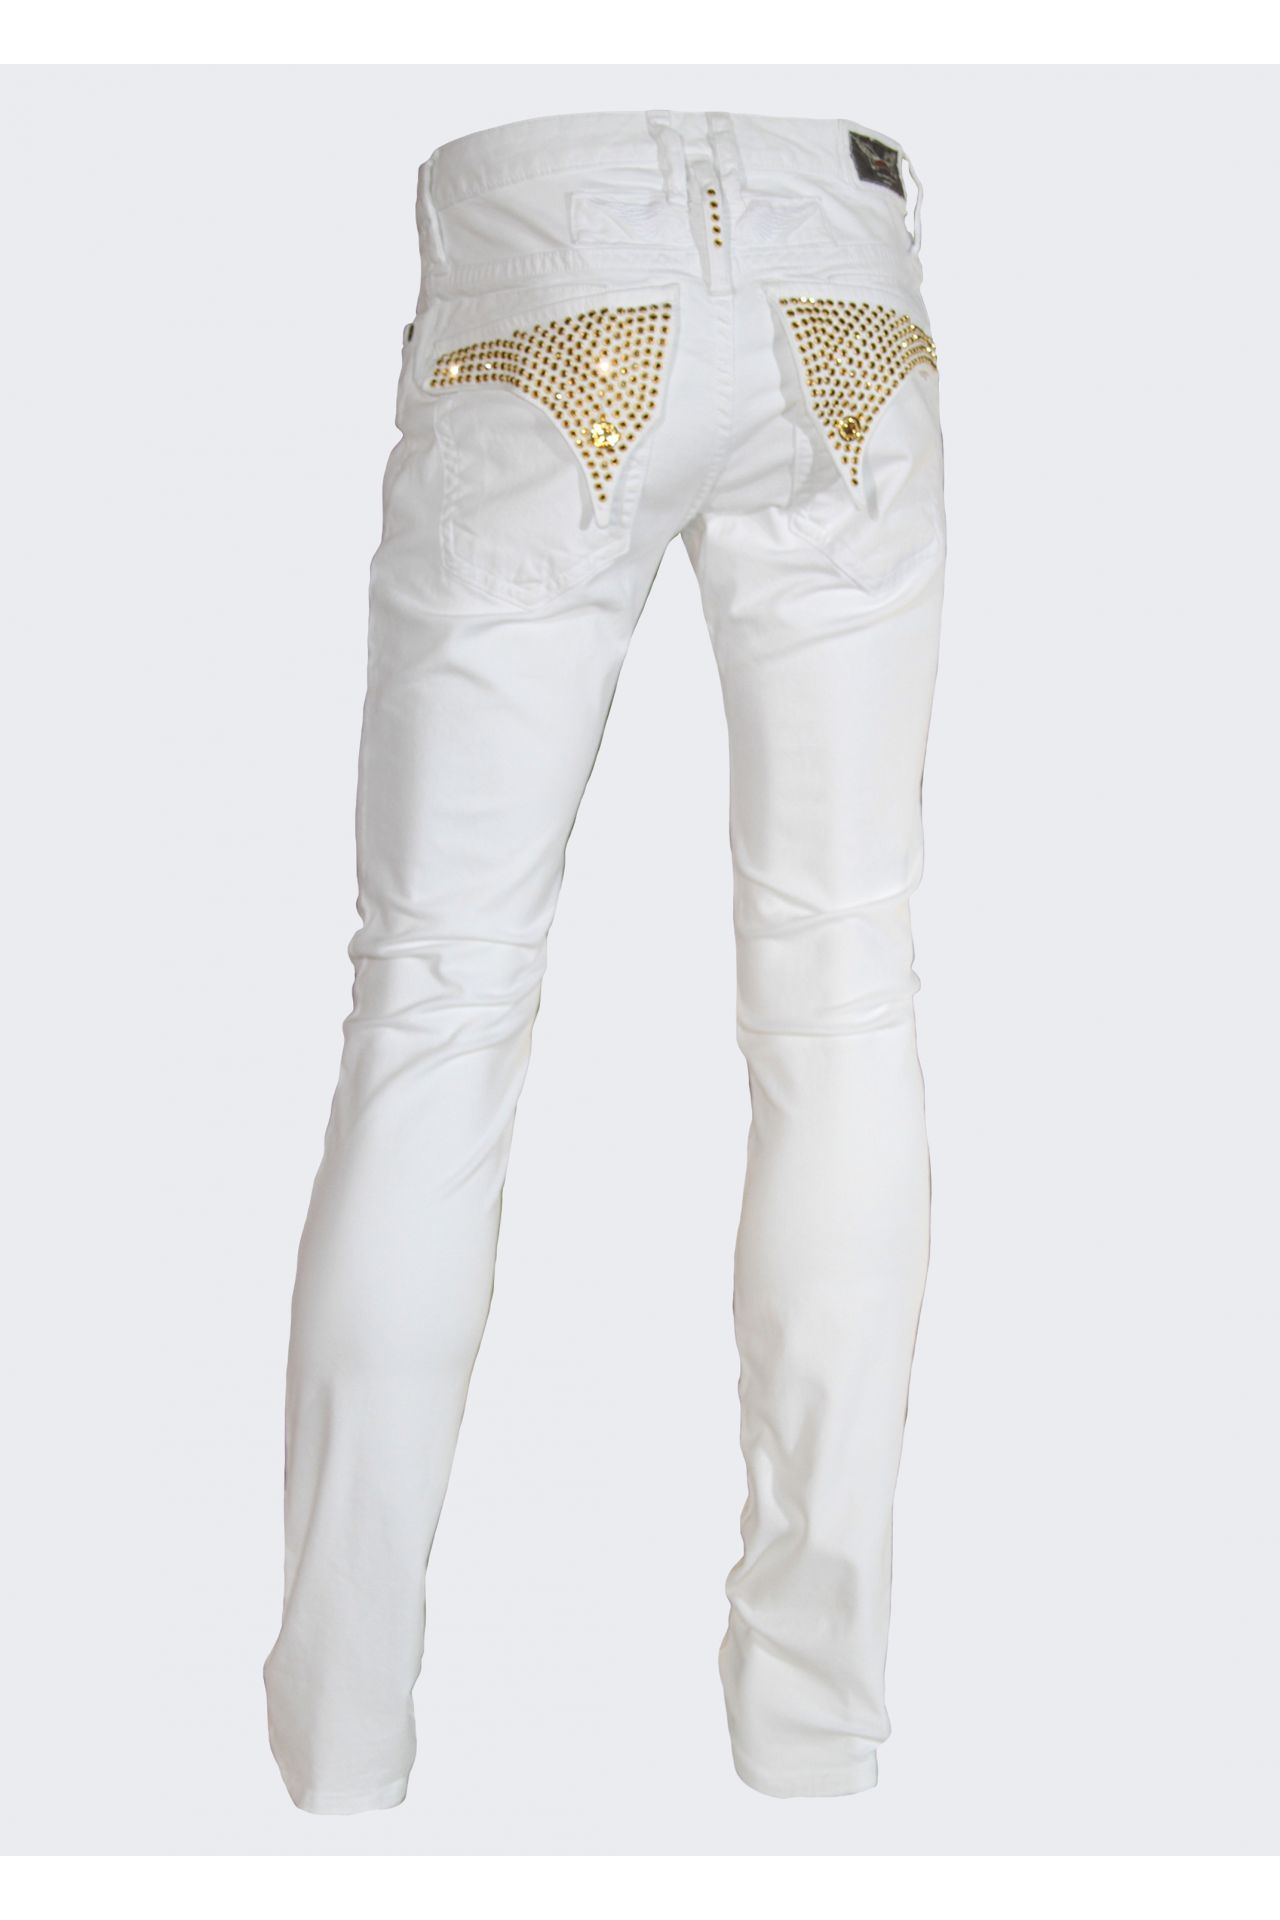 SKINNY IN WHITE WITH GOLD SW